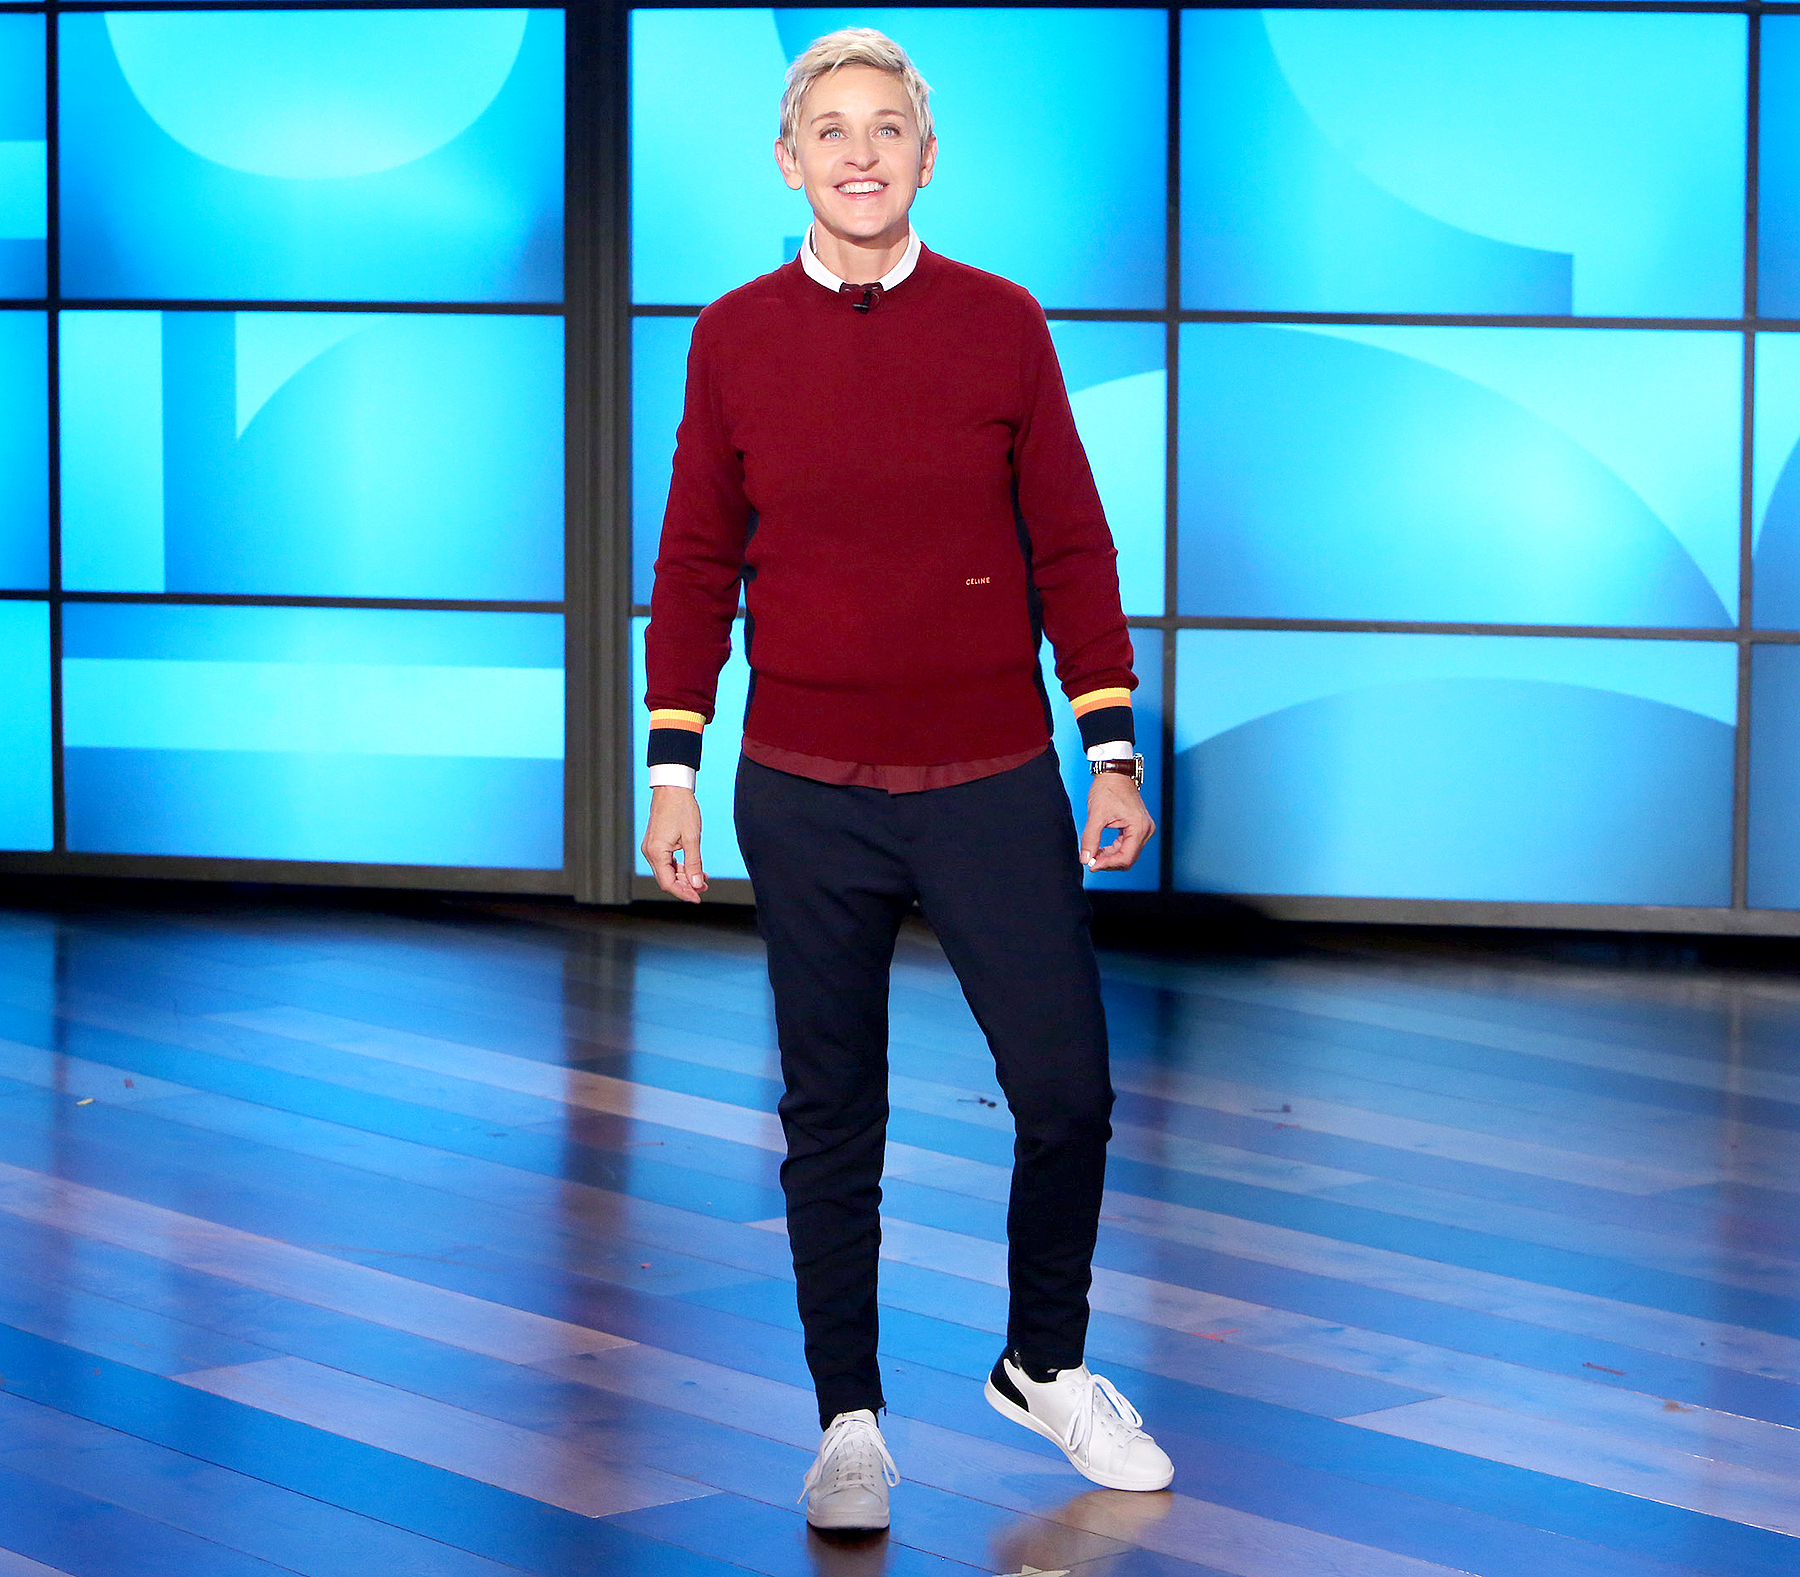 Image result for bad images of ellen degeneres